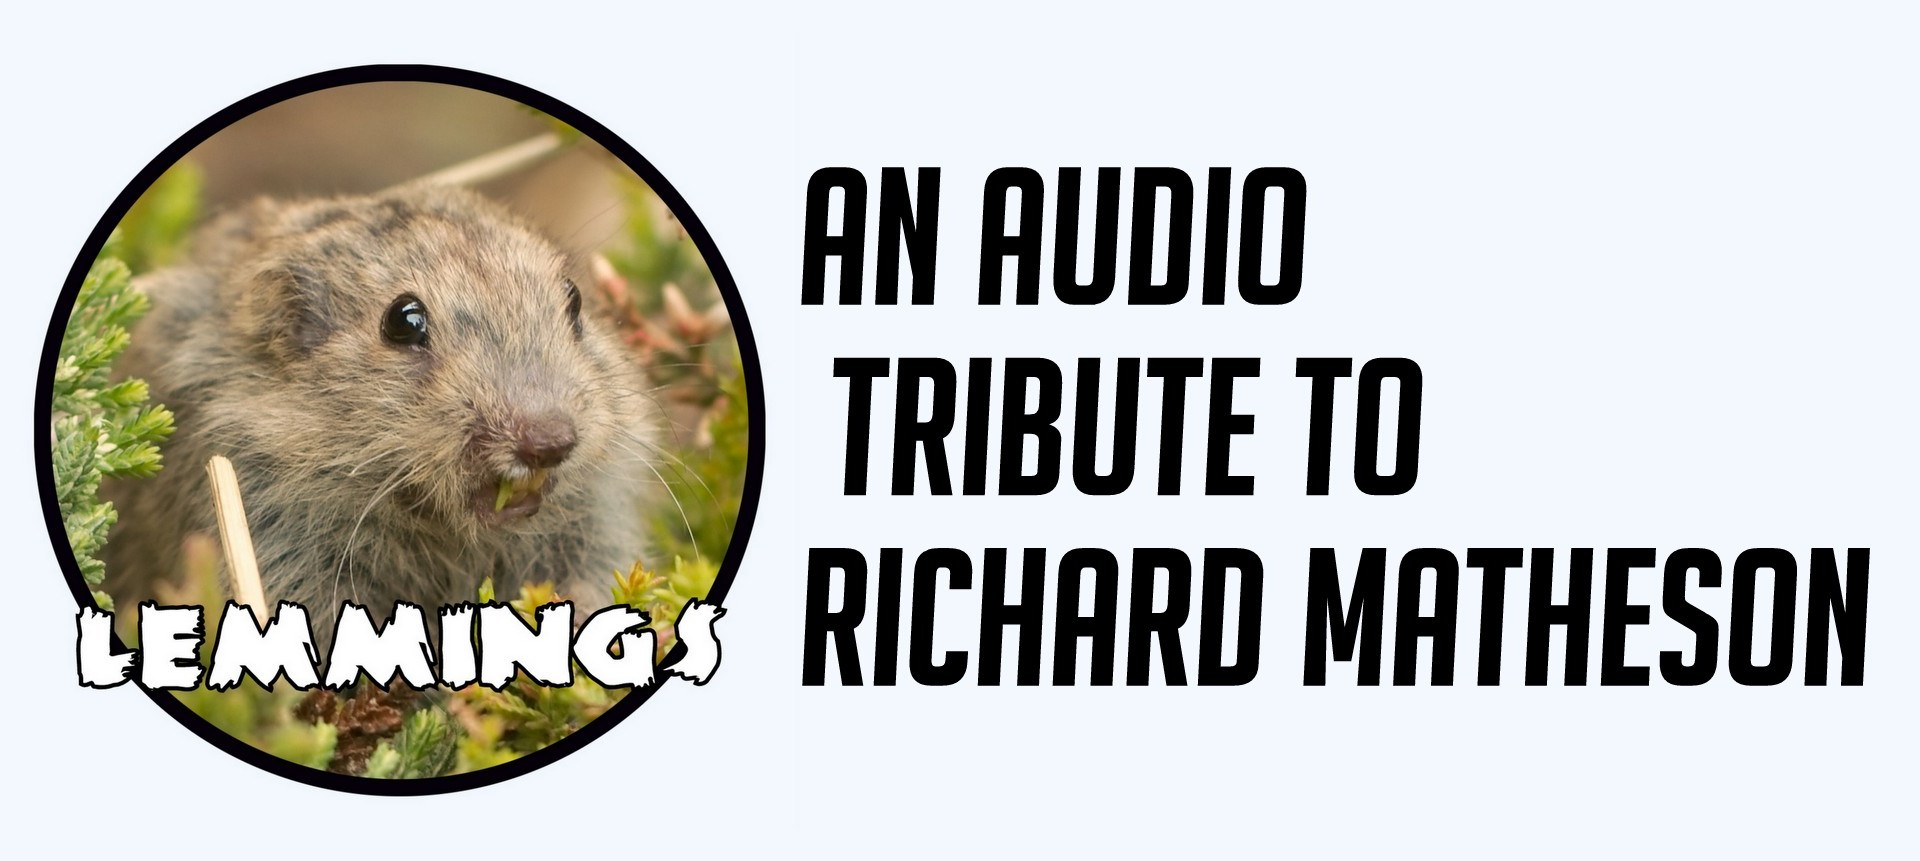 Lemmings Richard Matheson Banner Image - Photo: Flickr Sander van der Wel CC BY-SA 2.0.jpg